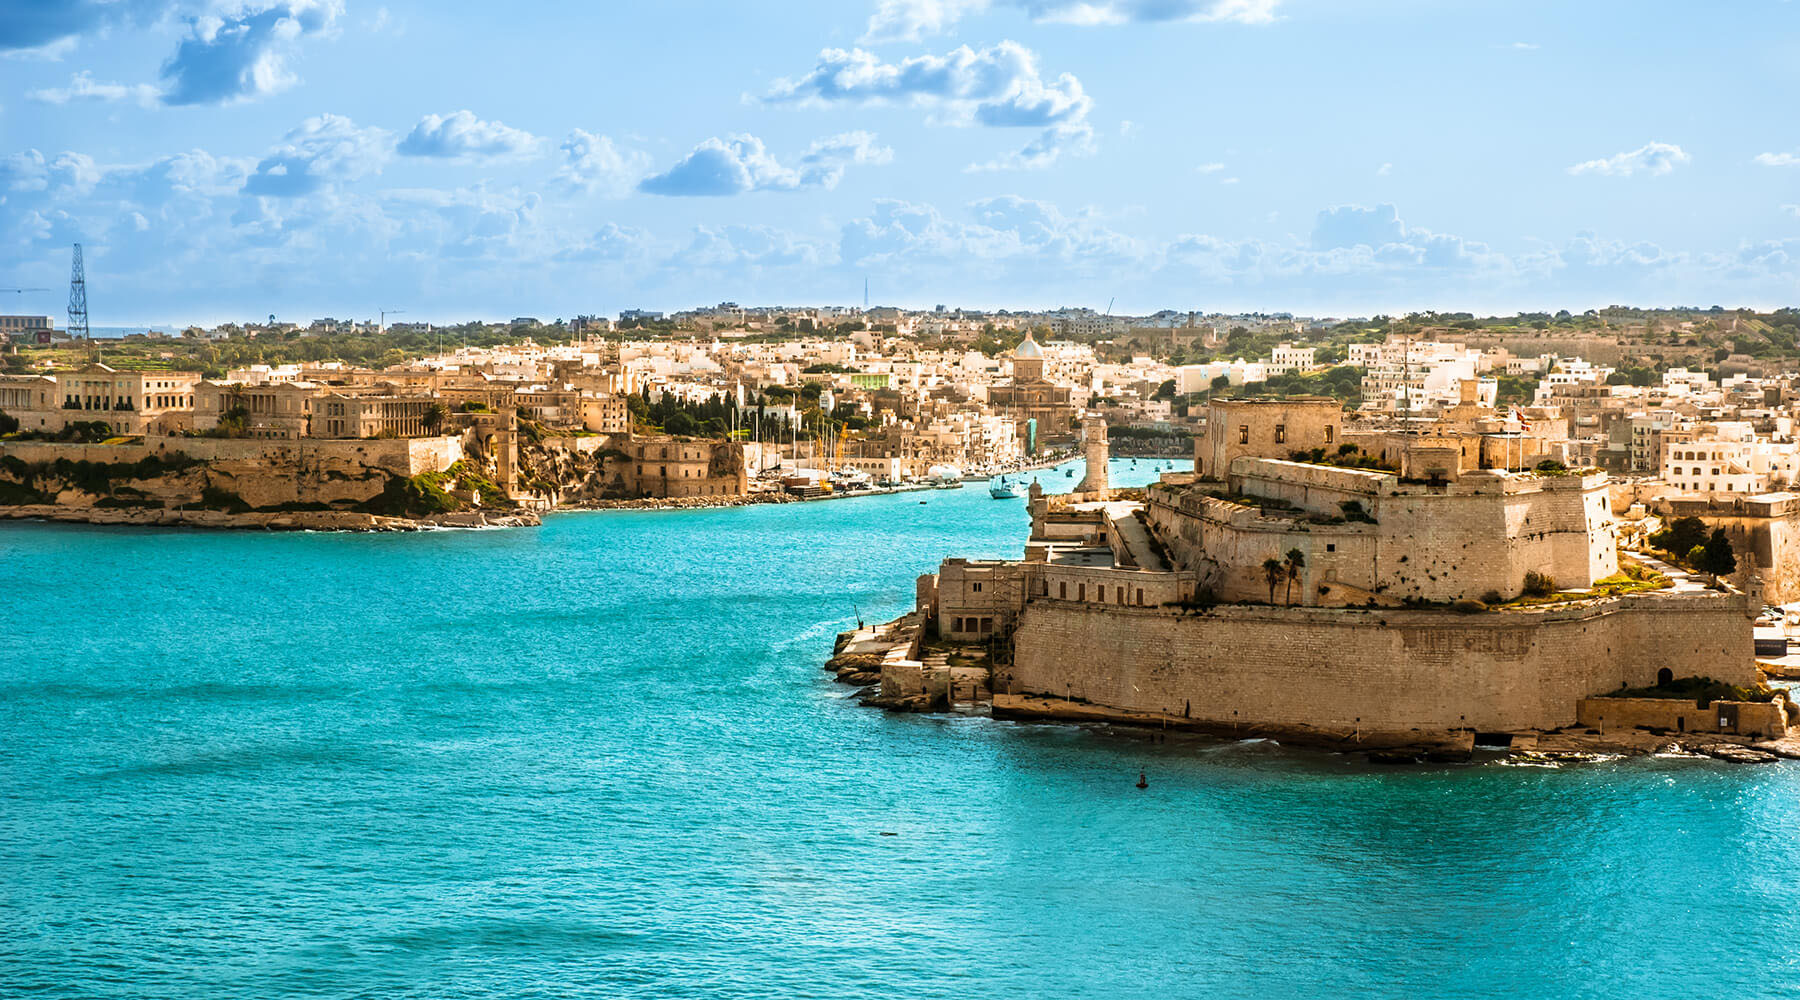 9 NIGHT ADRIATIC, MALTA & SICILY VOYAGE